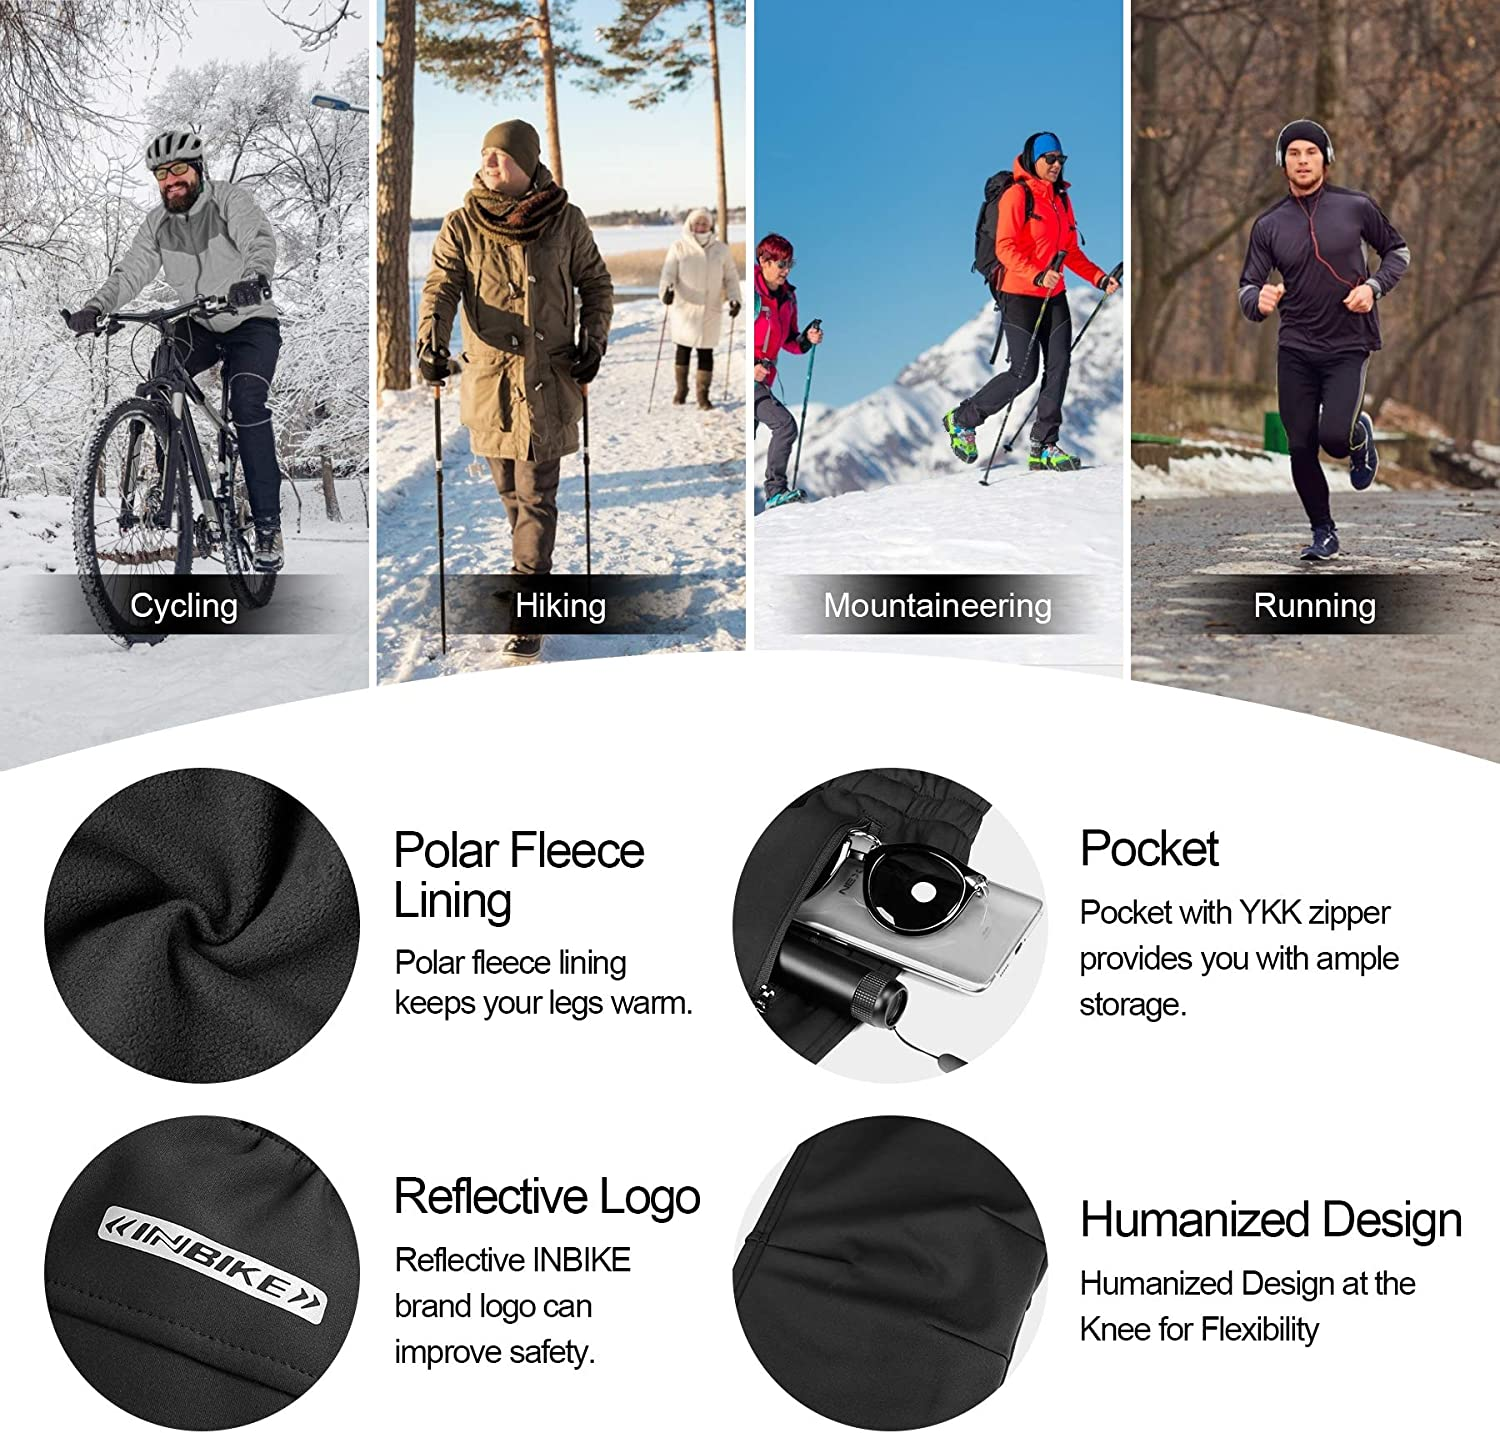 INBIKE Men's Winter Fleece Windproof Thermal Active Pants for Cycling Running Hiking Outdoor Multi Sports : Clothing